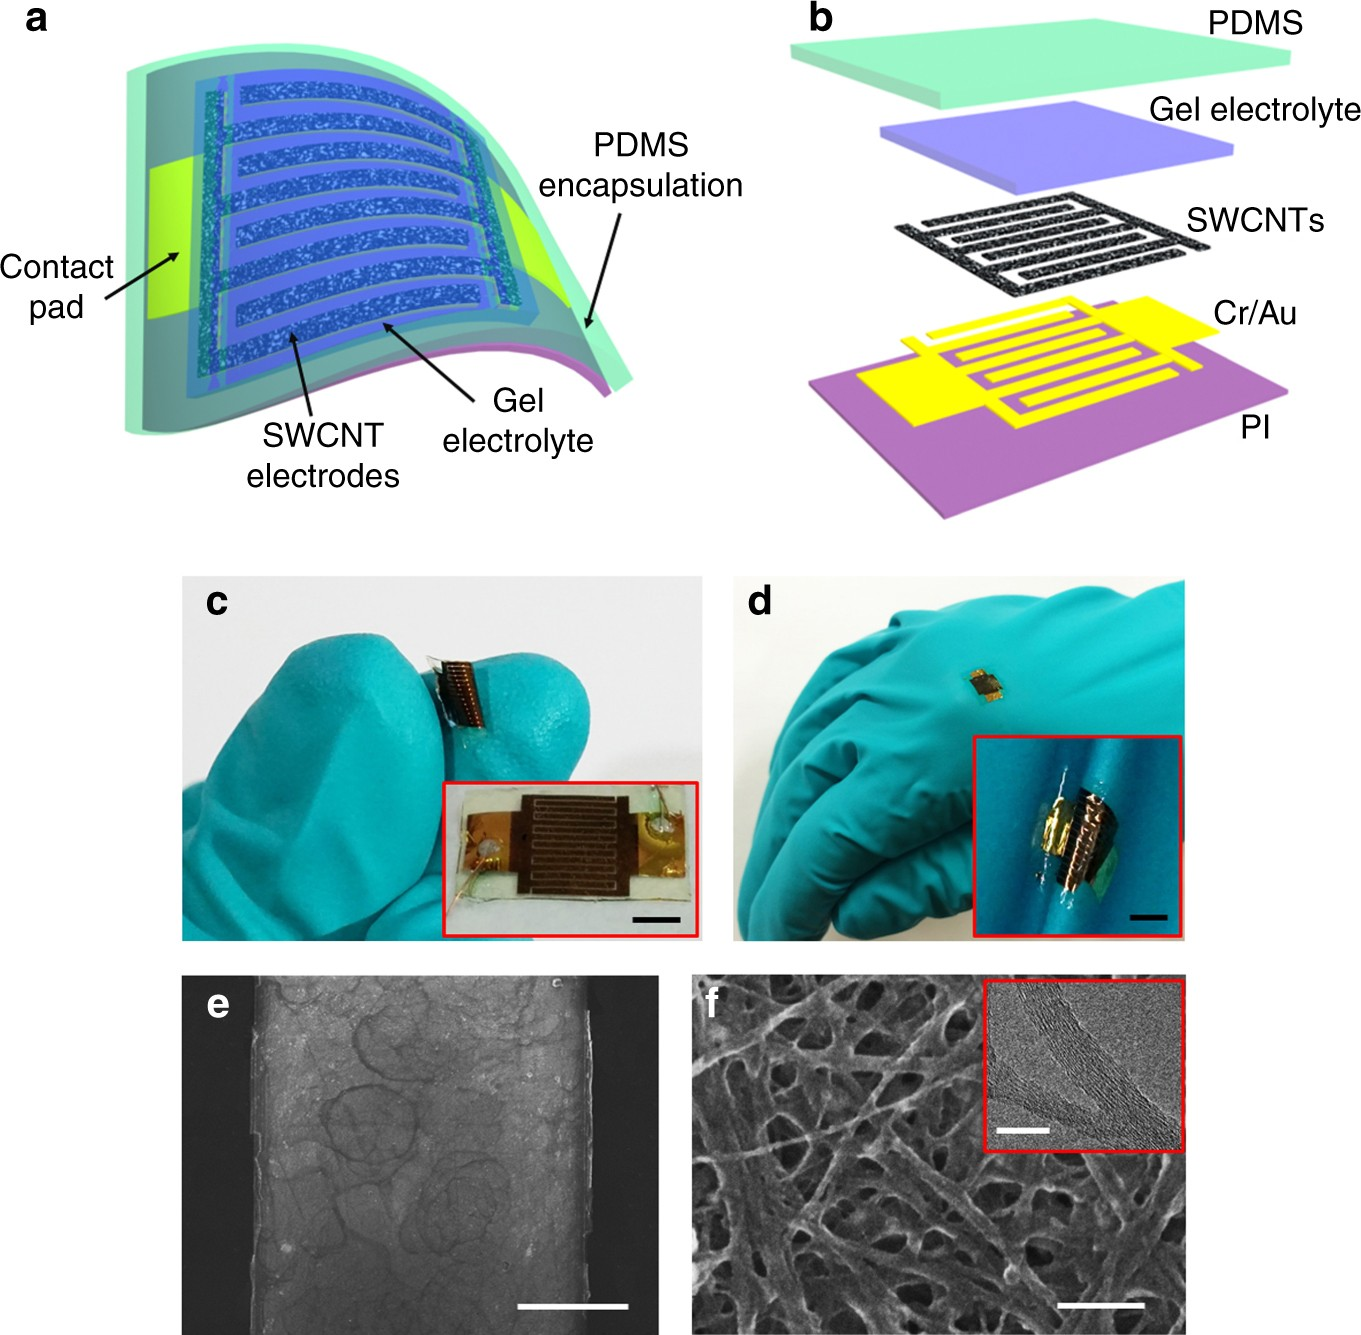 Highly Flexible Foldable And Rollable Microsupercapacitors On An Figure 77 A Capacitor Charge Discharge Circuit Ultrathin Polyimide Substrate With High Power Density Microsystems Nanoengineering